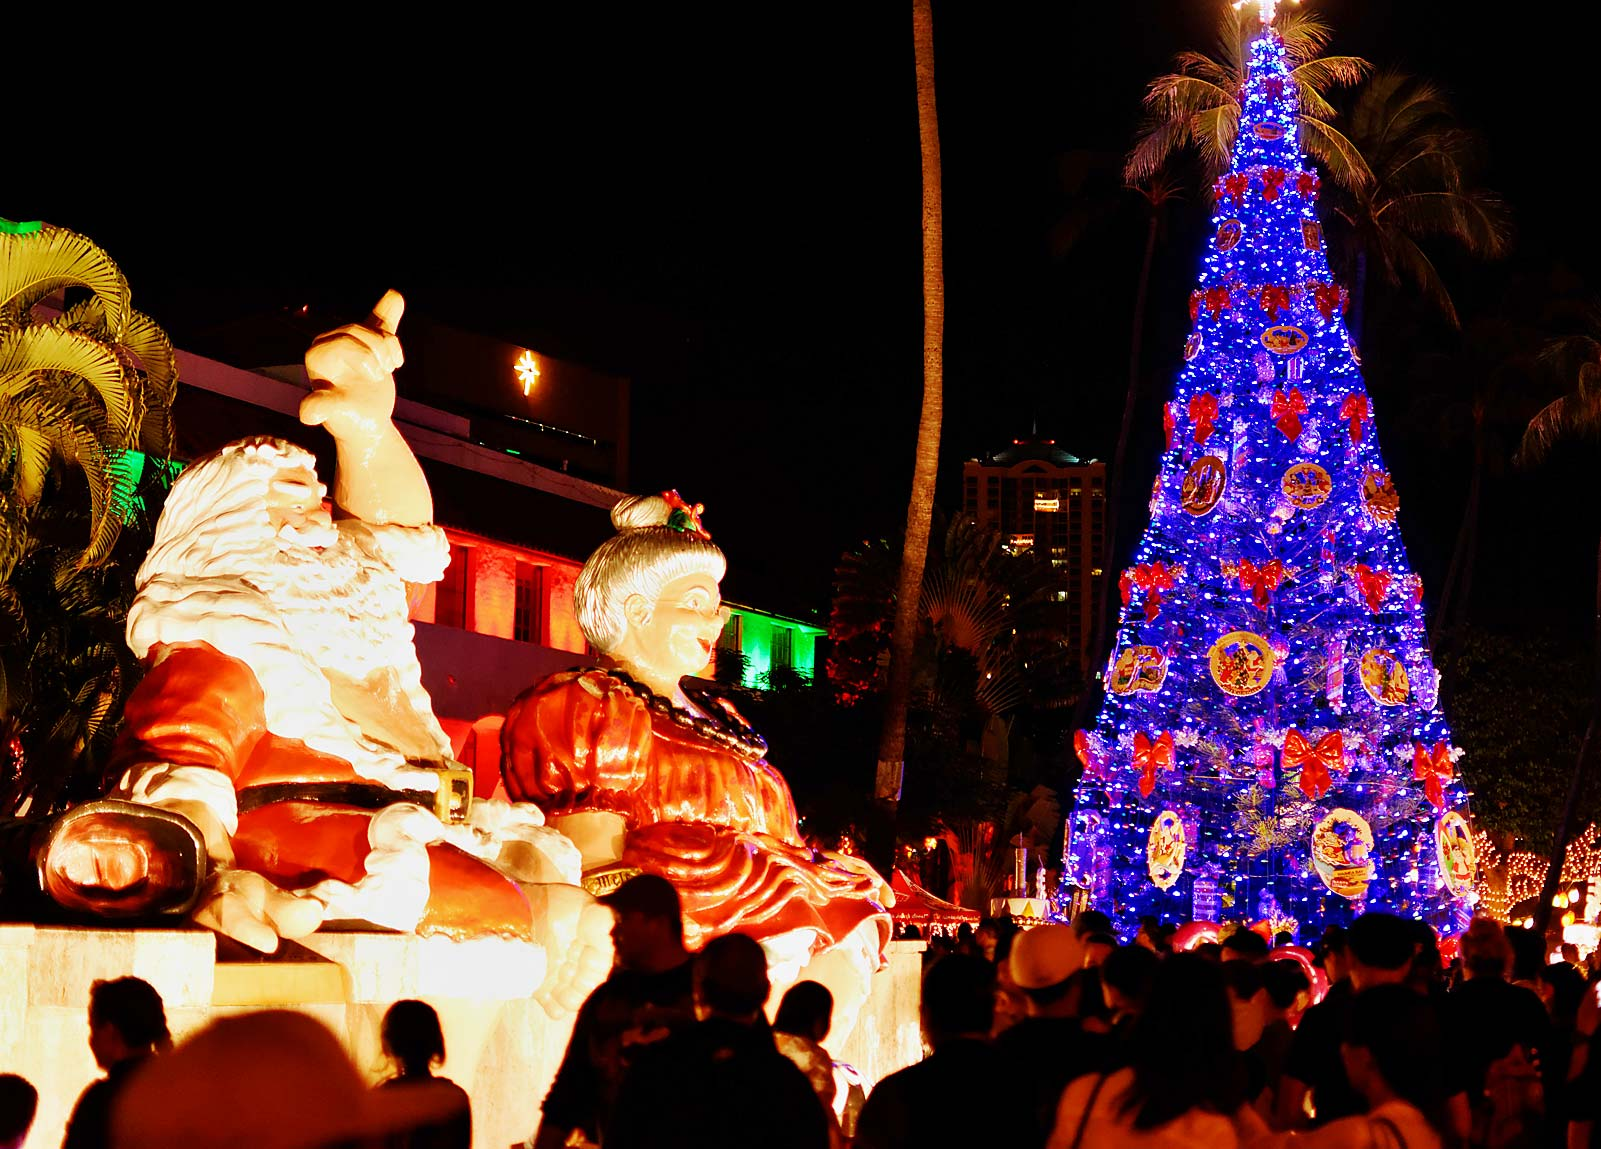 Hawaii Christmas.Christmas In Hawaii 2019 Hawaii Christmas Vacation Packages